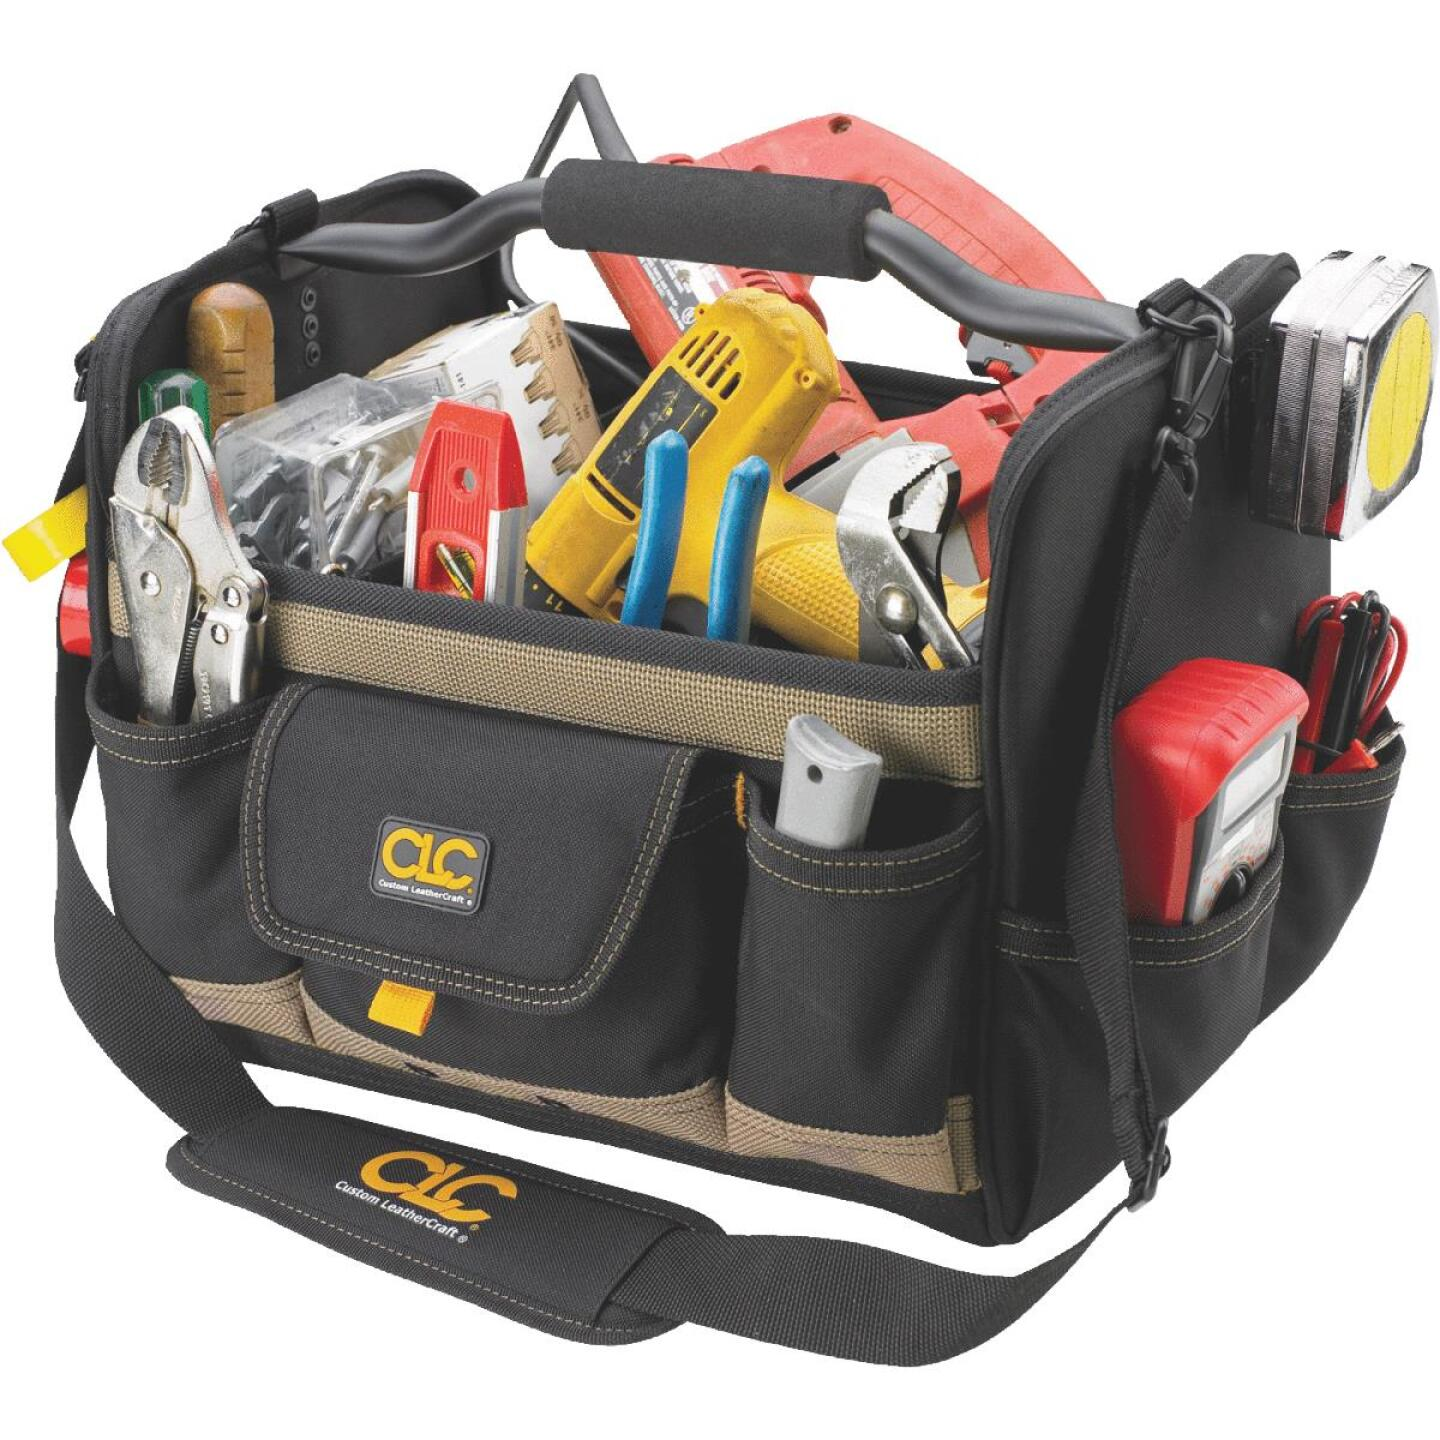 CLC 21-Pocket 14 In. Tool Tote Image 1